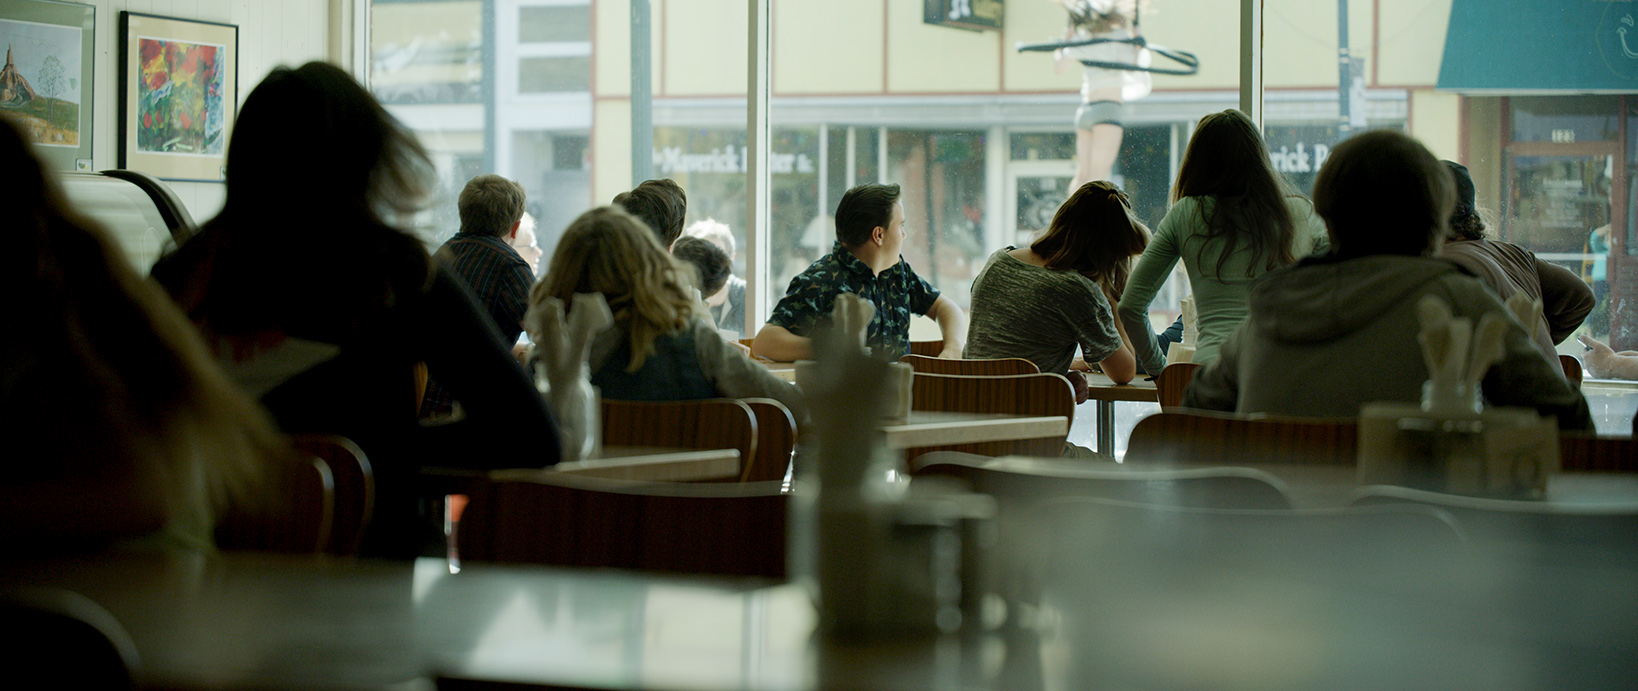 through the shop-smaller